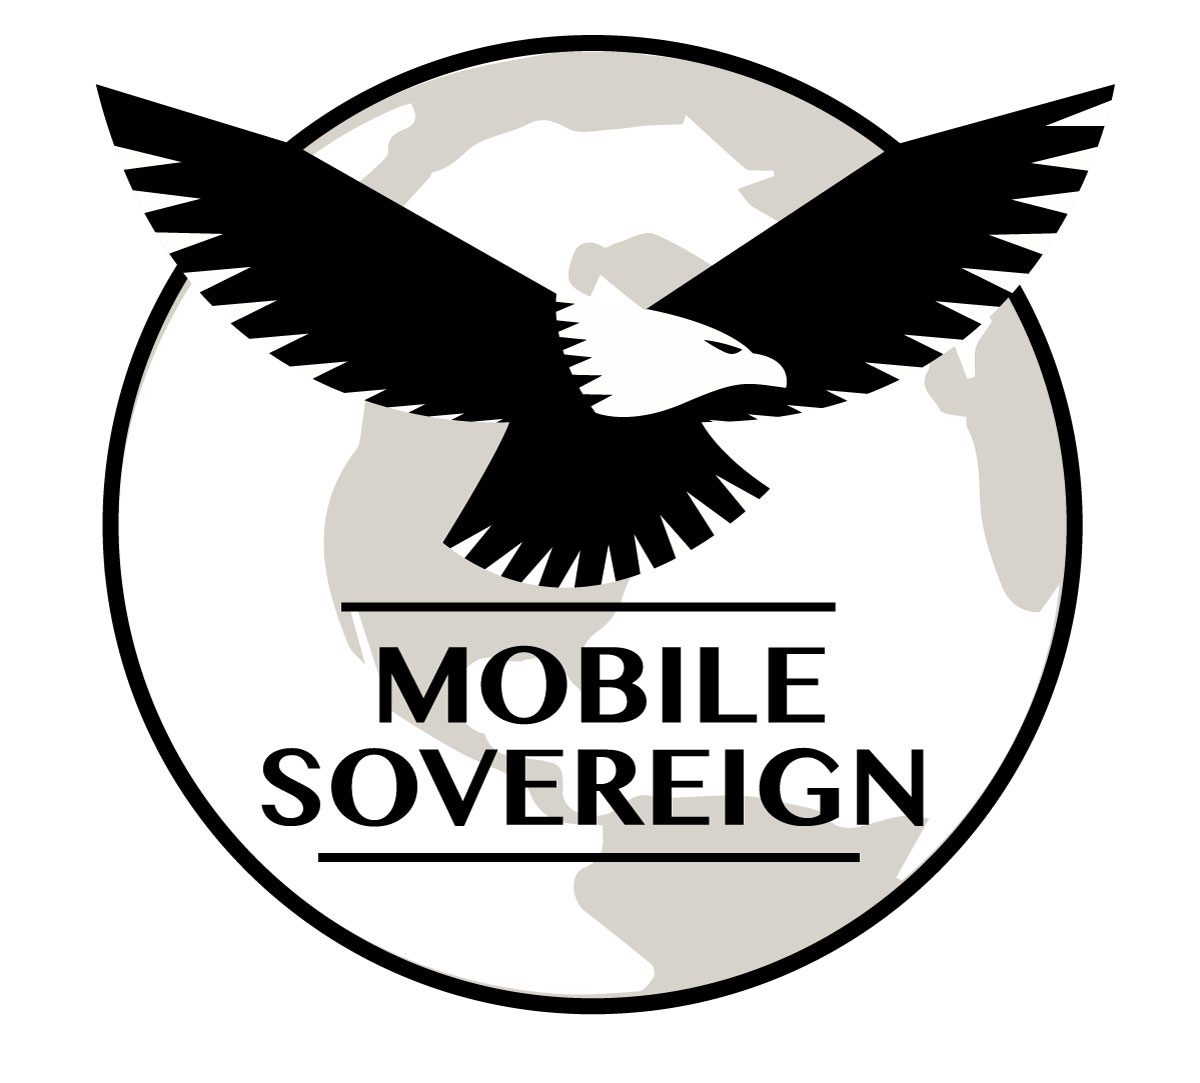 Mobile Sovereign